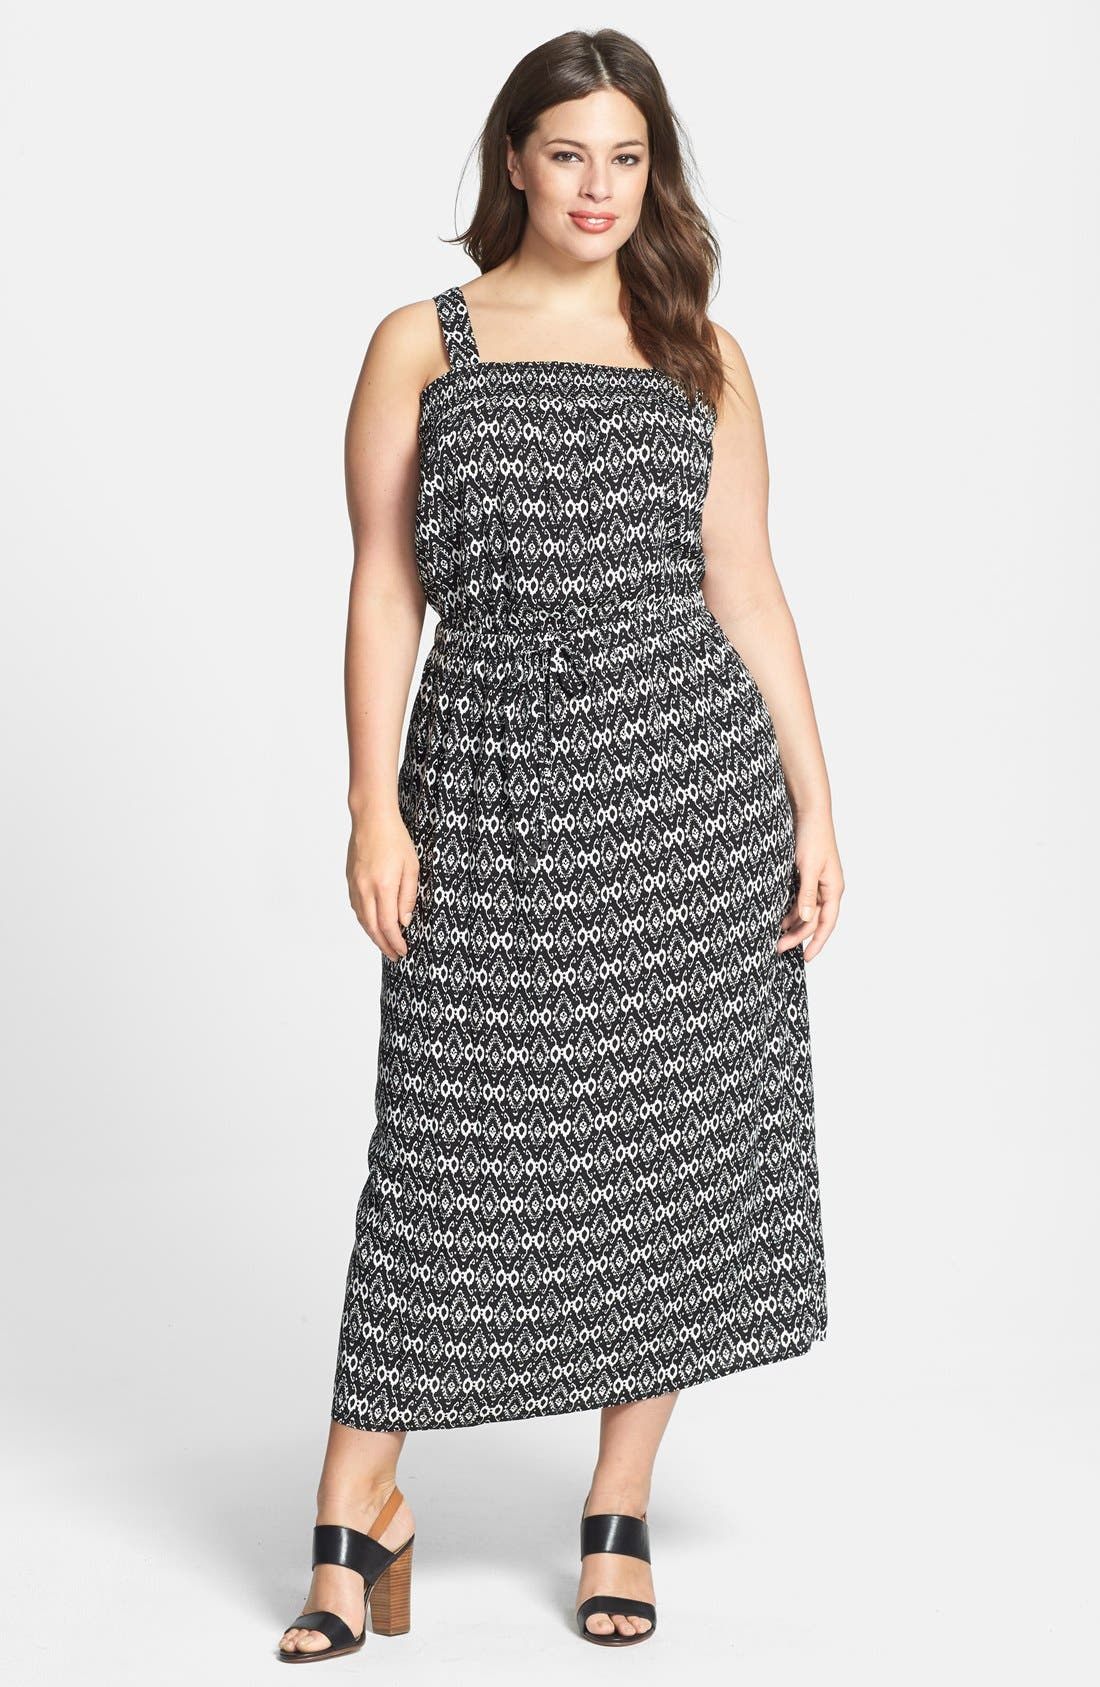 Alternate Image 1 Selected - Two by Vince Camuto 'Ancient Etchings' Tie Waist Maxi Dress (Plus Size)